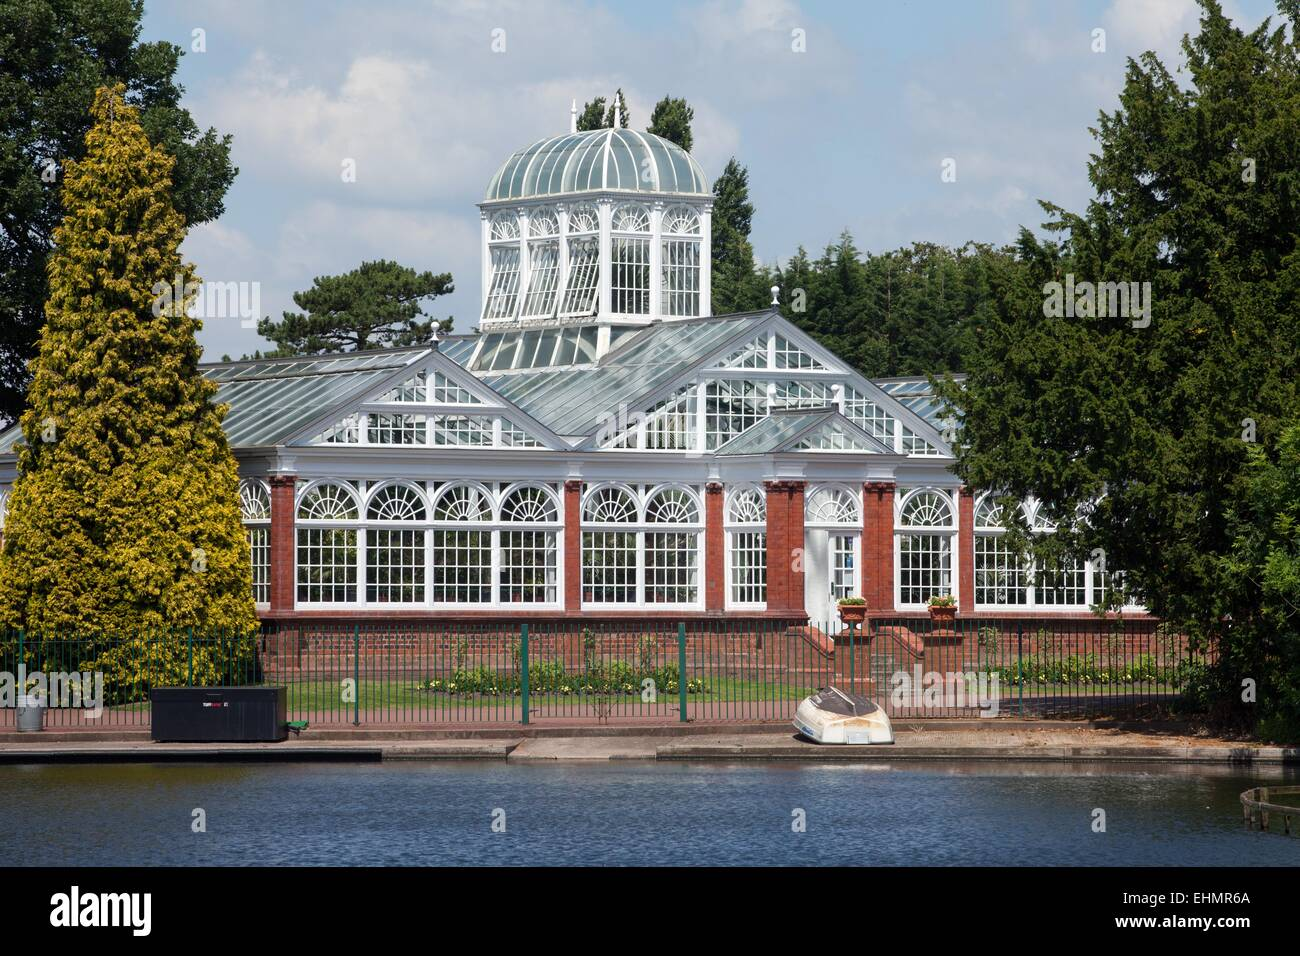 Victorian conservatory by the lake in West Park, Wolverhampton - Stock Image